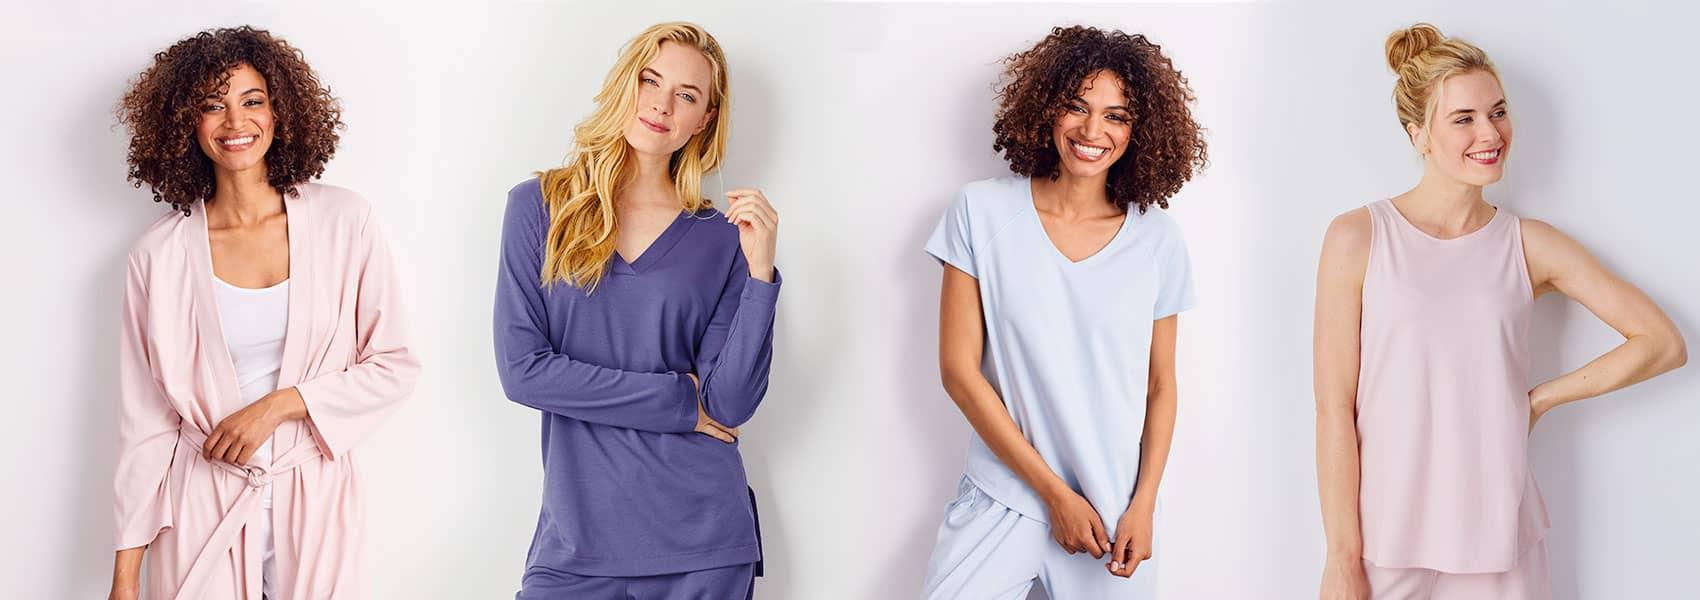 Shop Pima Pajamas & Loungewear